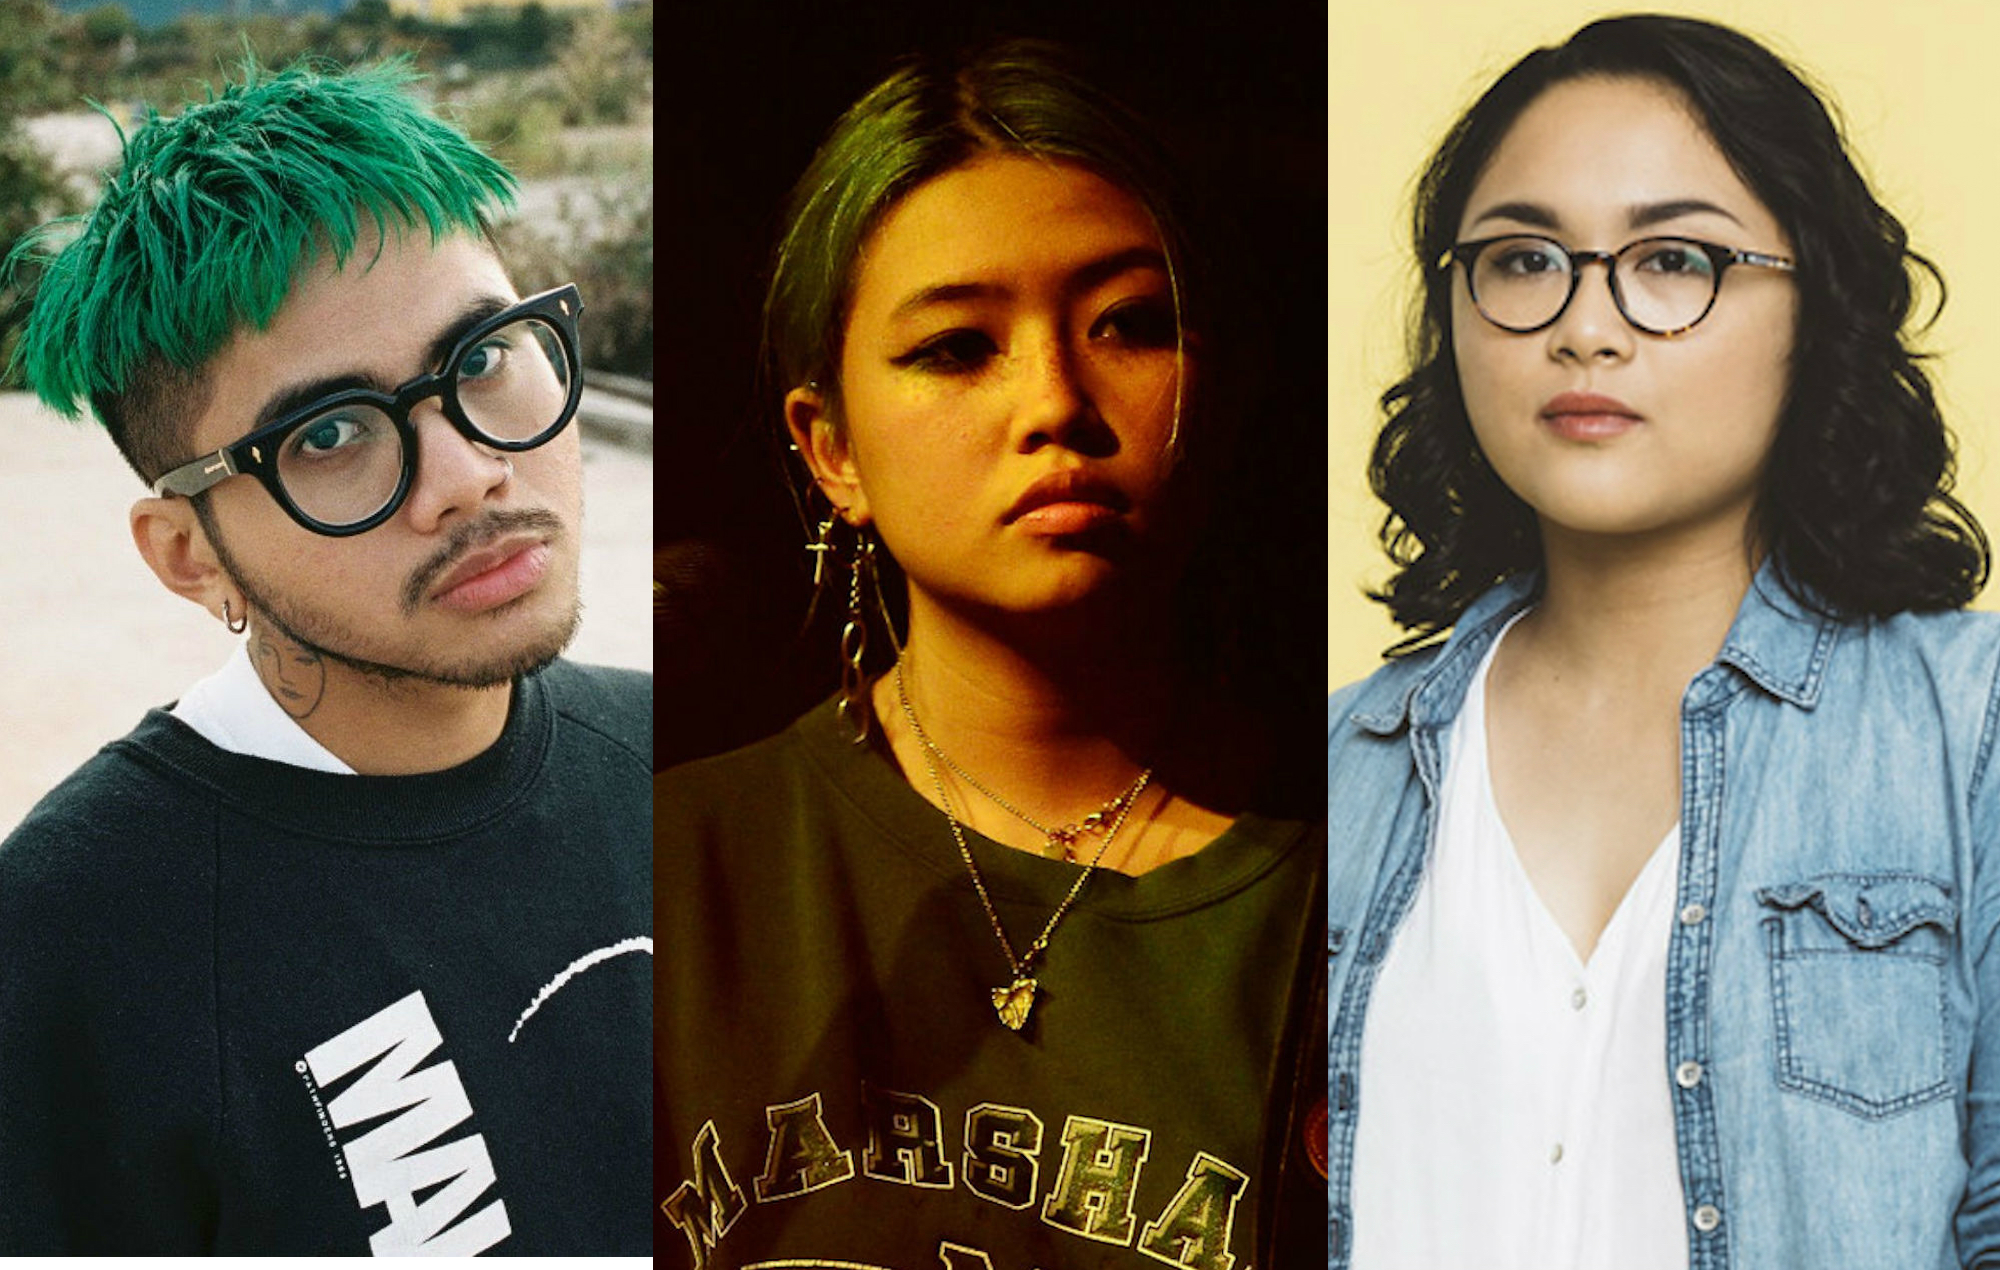 No Rome is teasing a collab with Beabadoobee and Jay Som